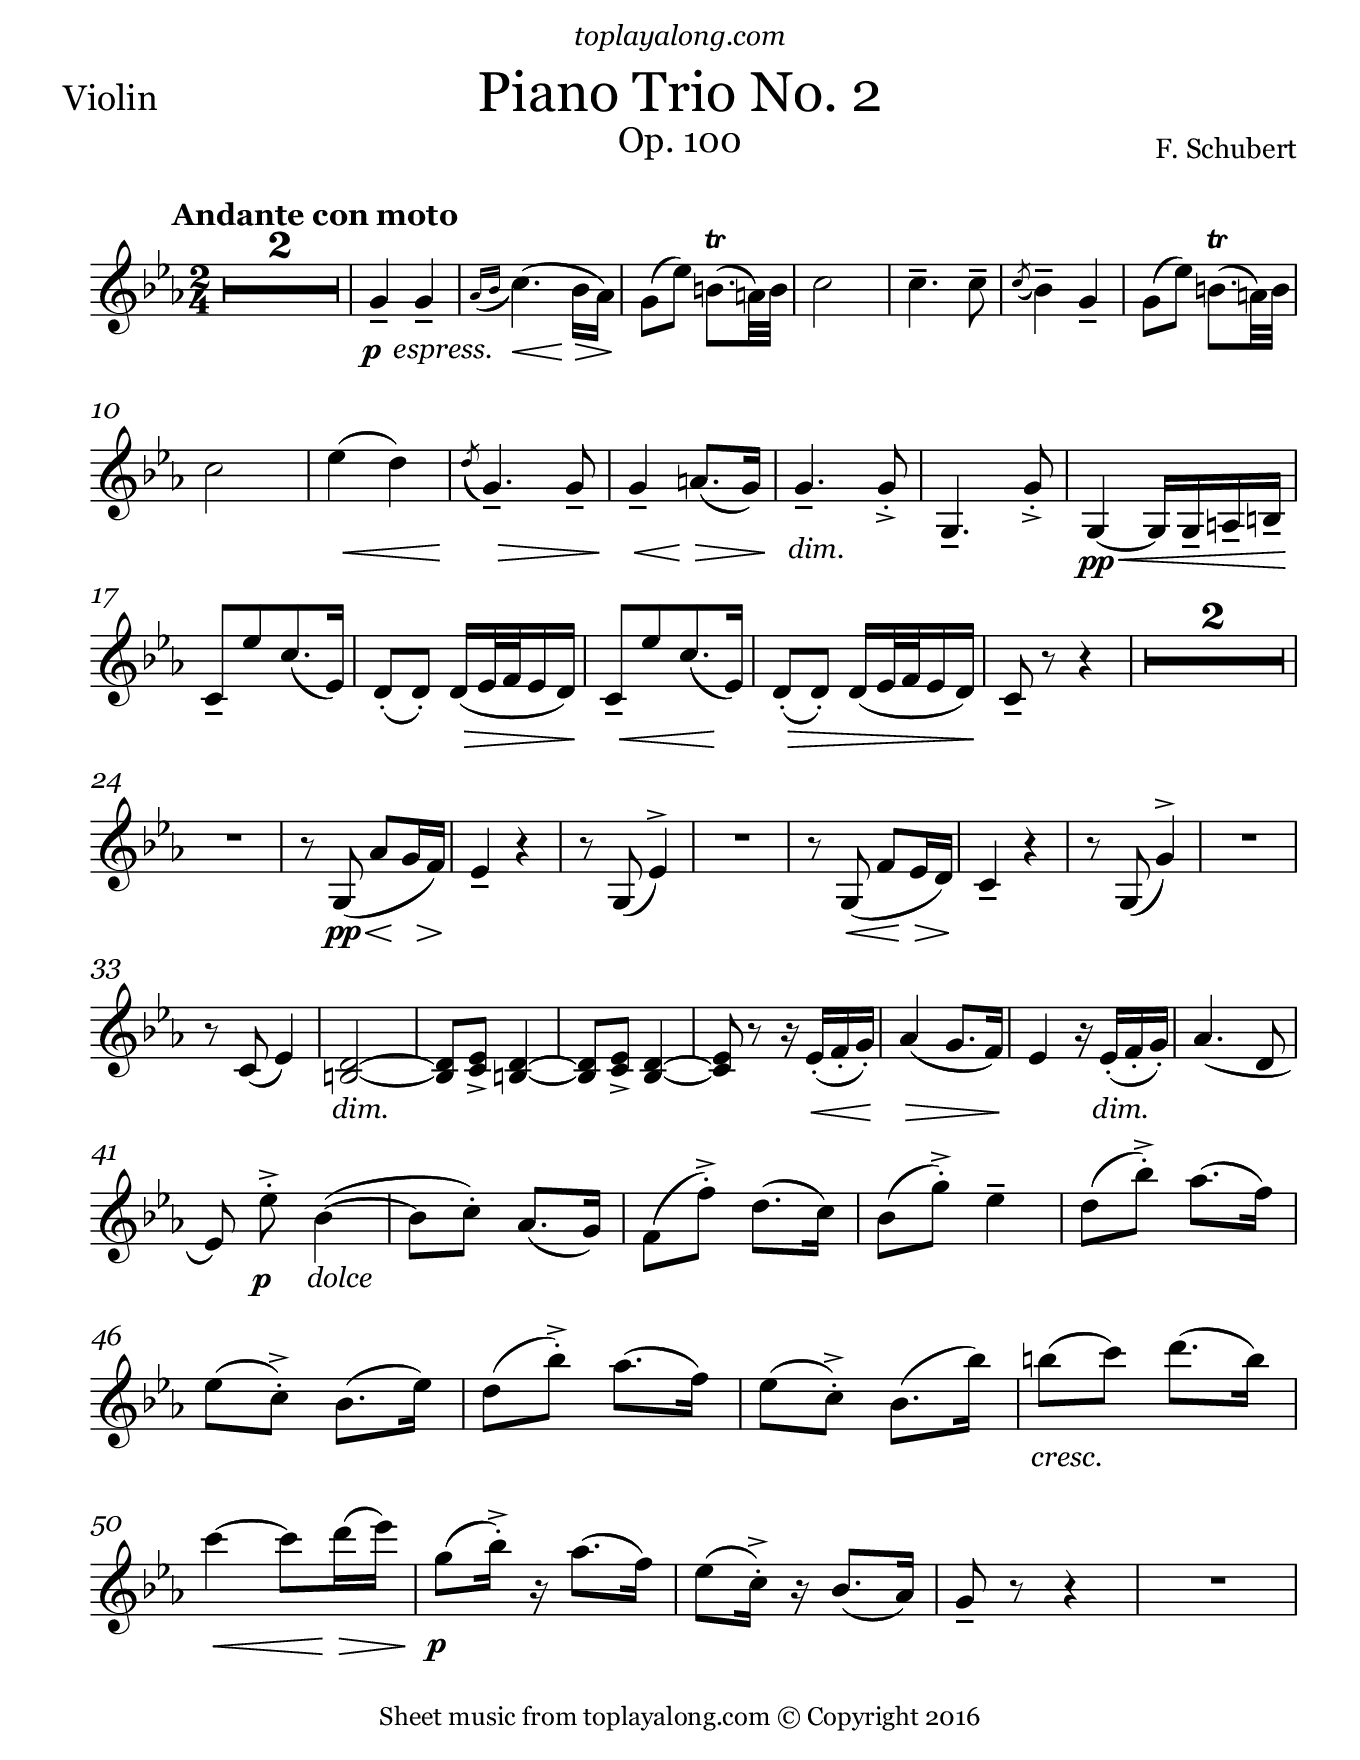 Piano Trio No. 2 Op. 100 (2nd mvt.) by Schubert. Sheet music for Violin, page 1.